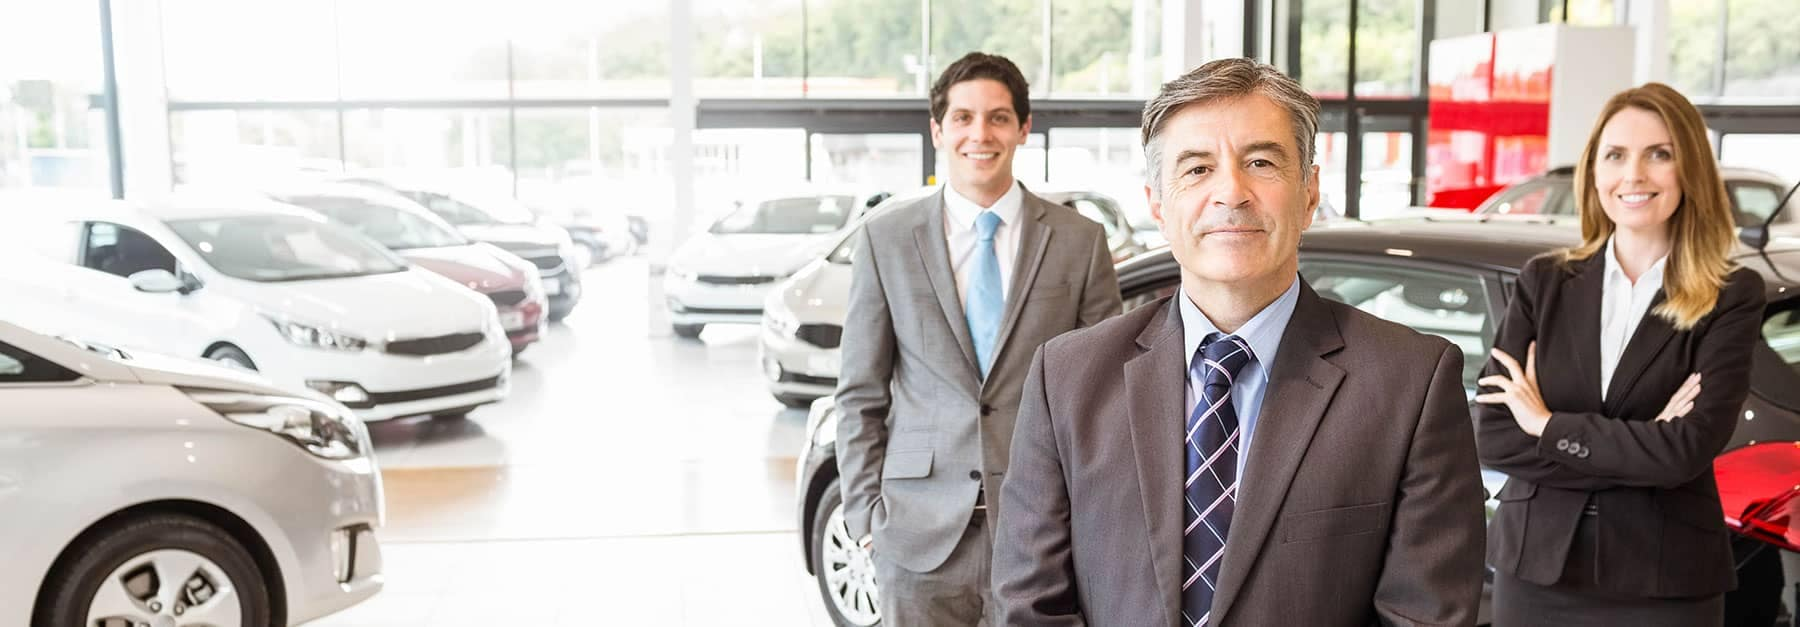 Three Dealership Salesman Standing in Showroom